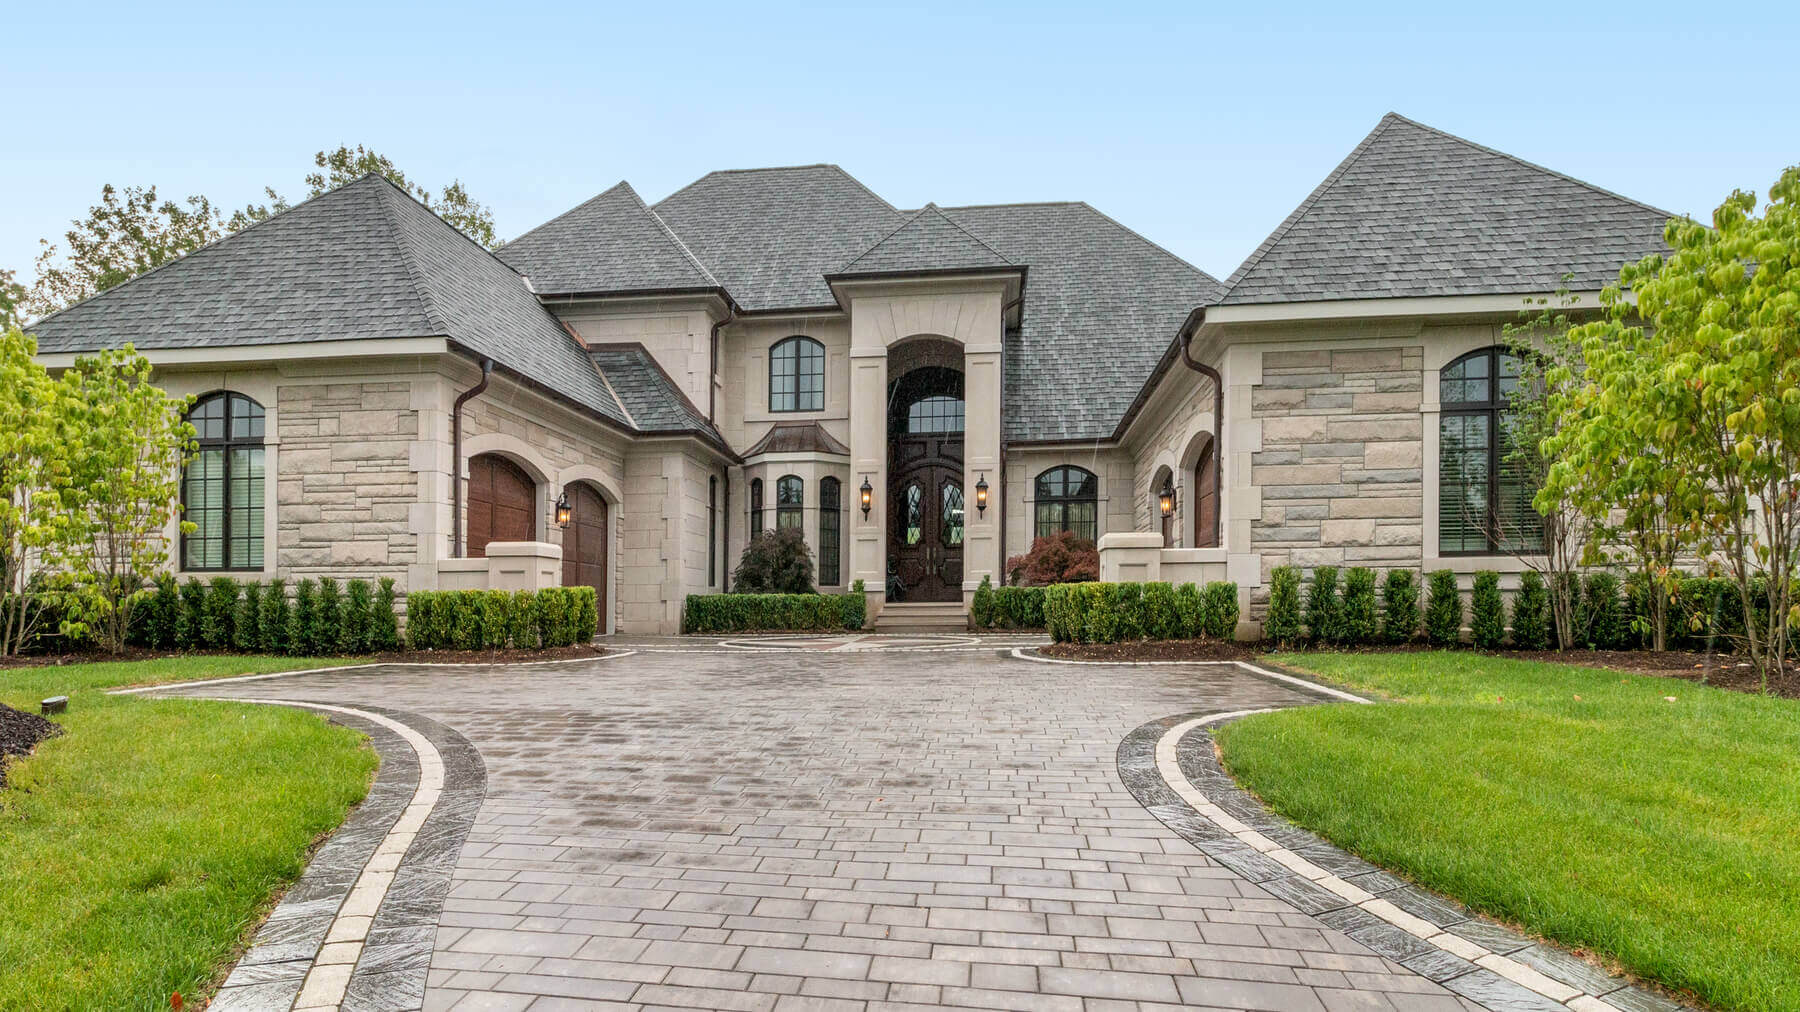 2915 Turtle Pond - Bloomfield Hills, Michigan - $3,250,000 USD